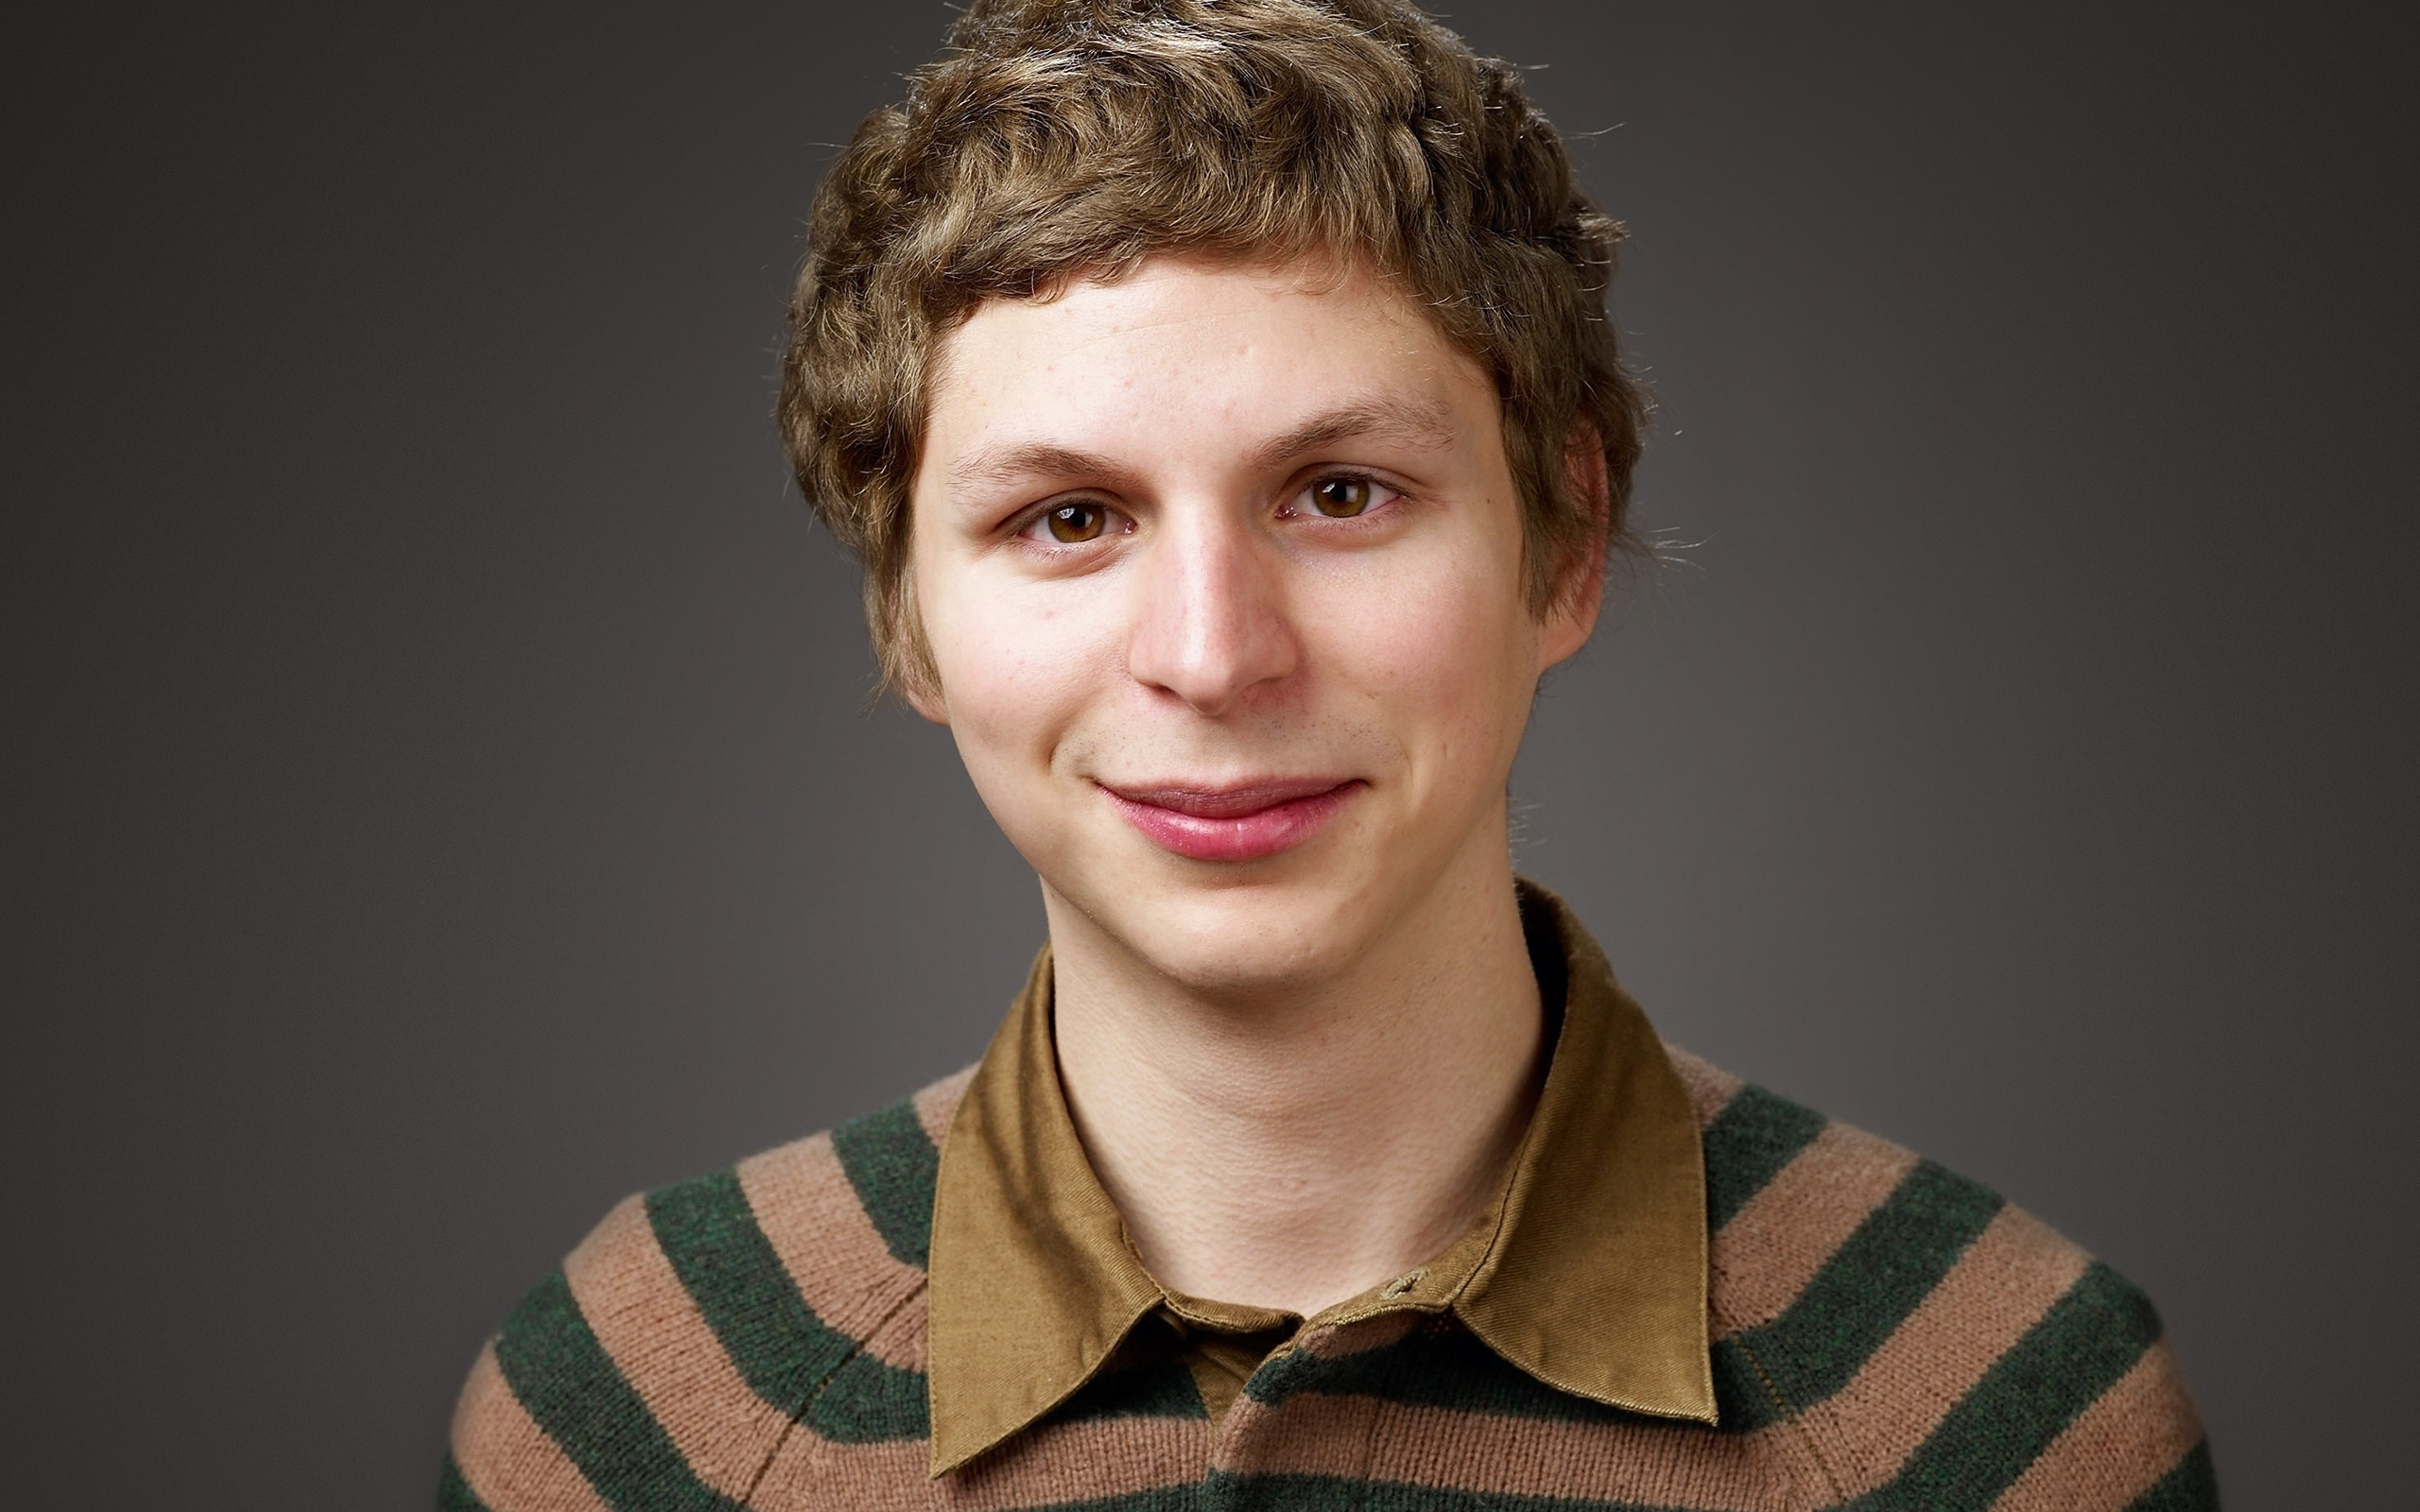 Michael Cera for 2560 x 1600 widescreen resolution